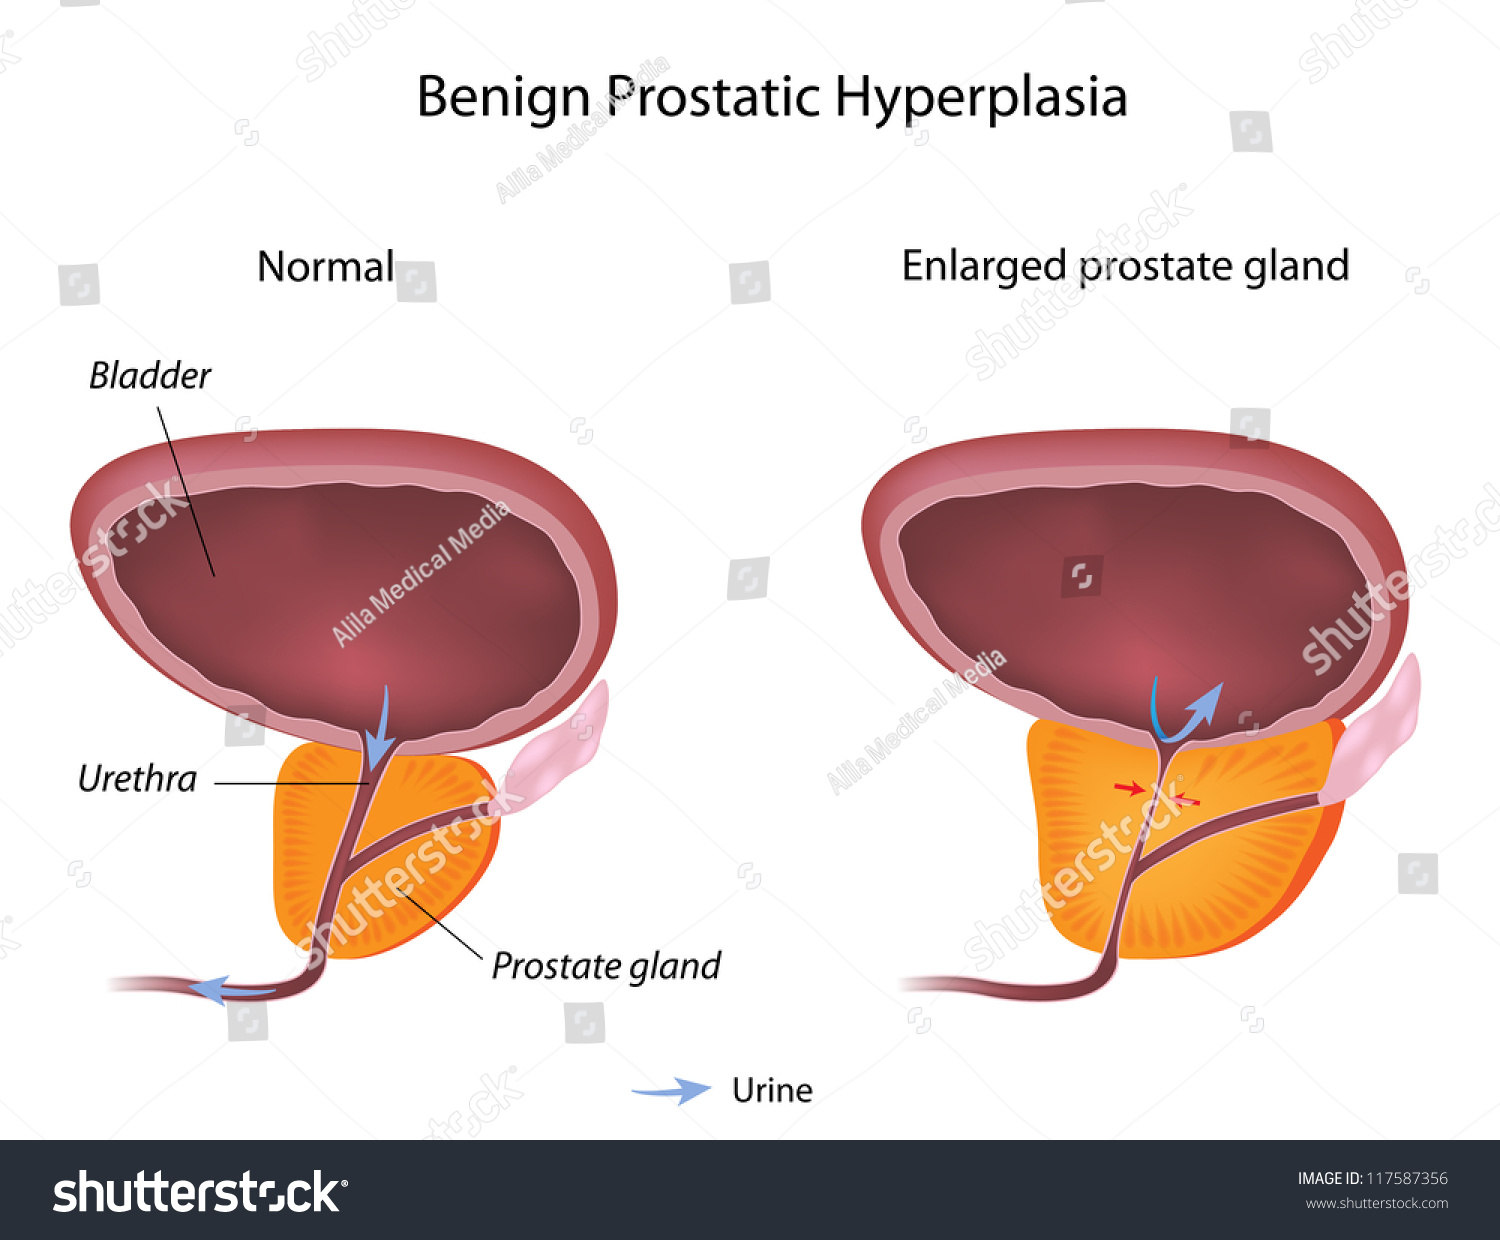 benign prostatic hyperplasia Bph stands for benign prostatic hyperplasia, or enlarged prostate gland half of  all men will have prostate problems by the age of 50 bph.